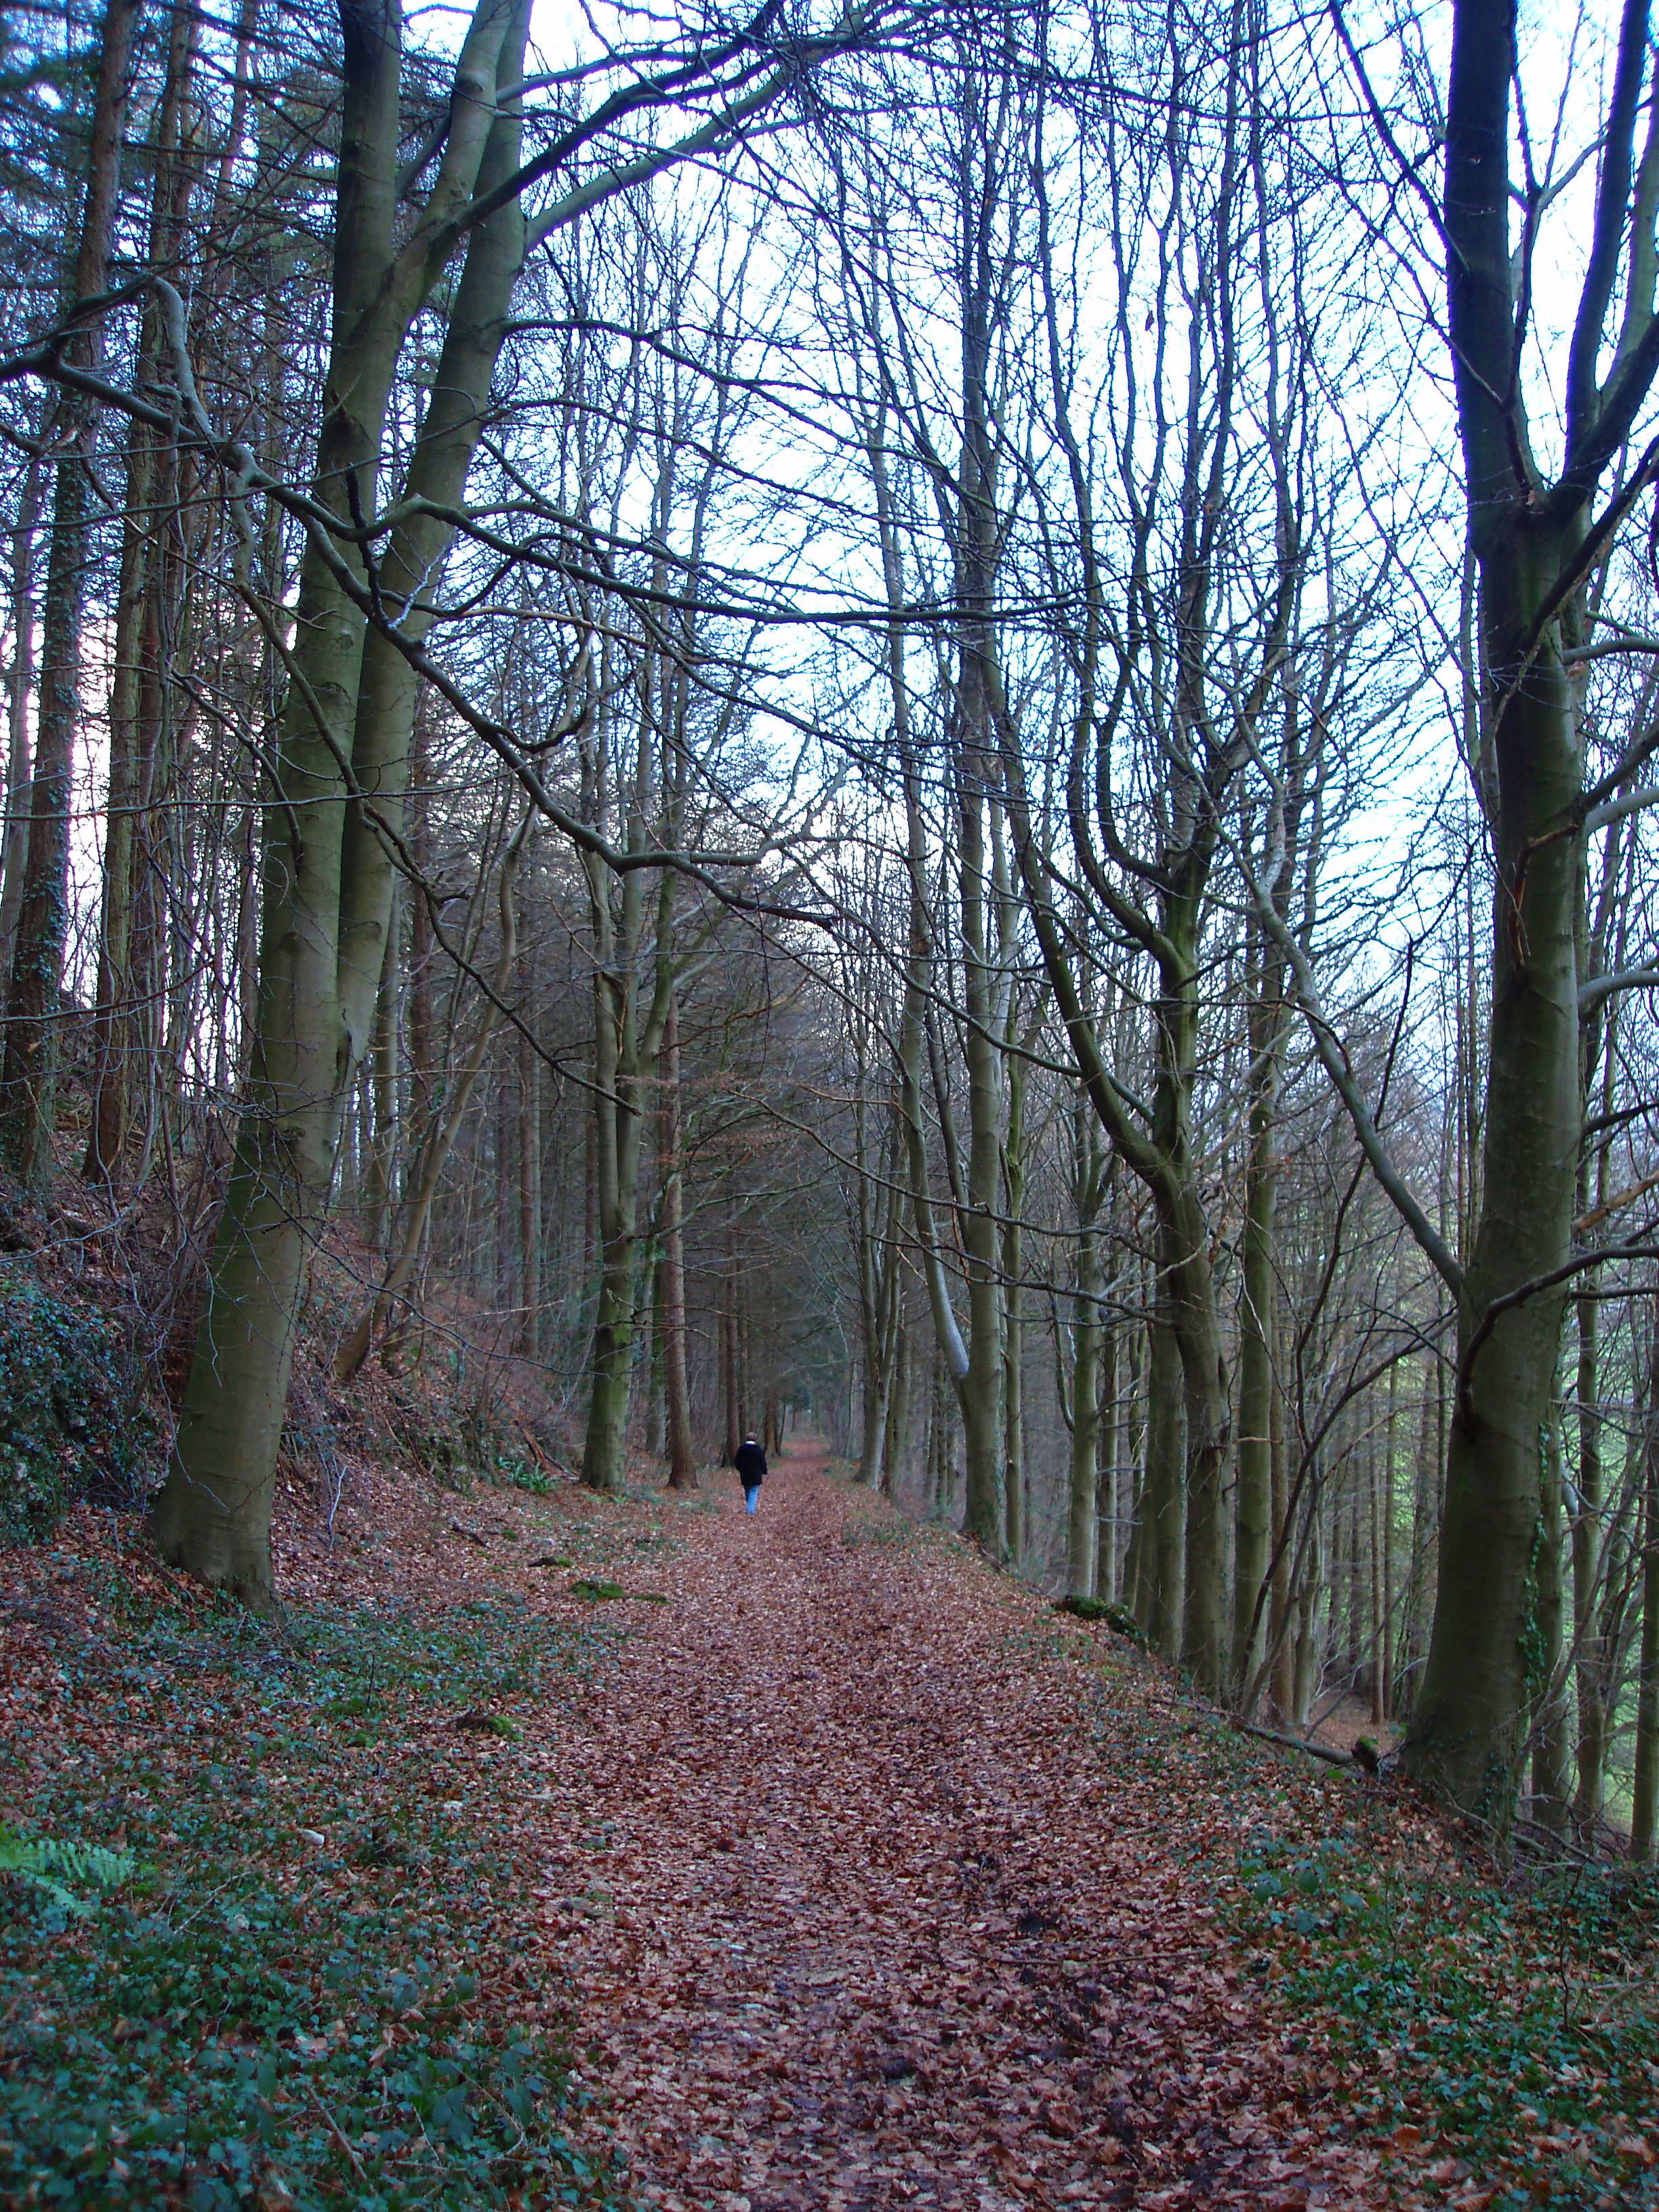 a distant lone individual walking through a winter woodland